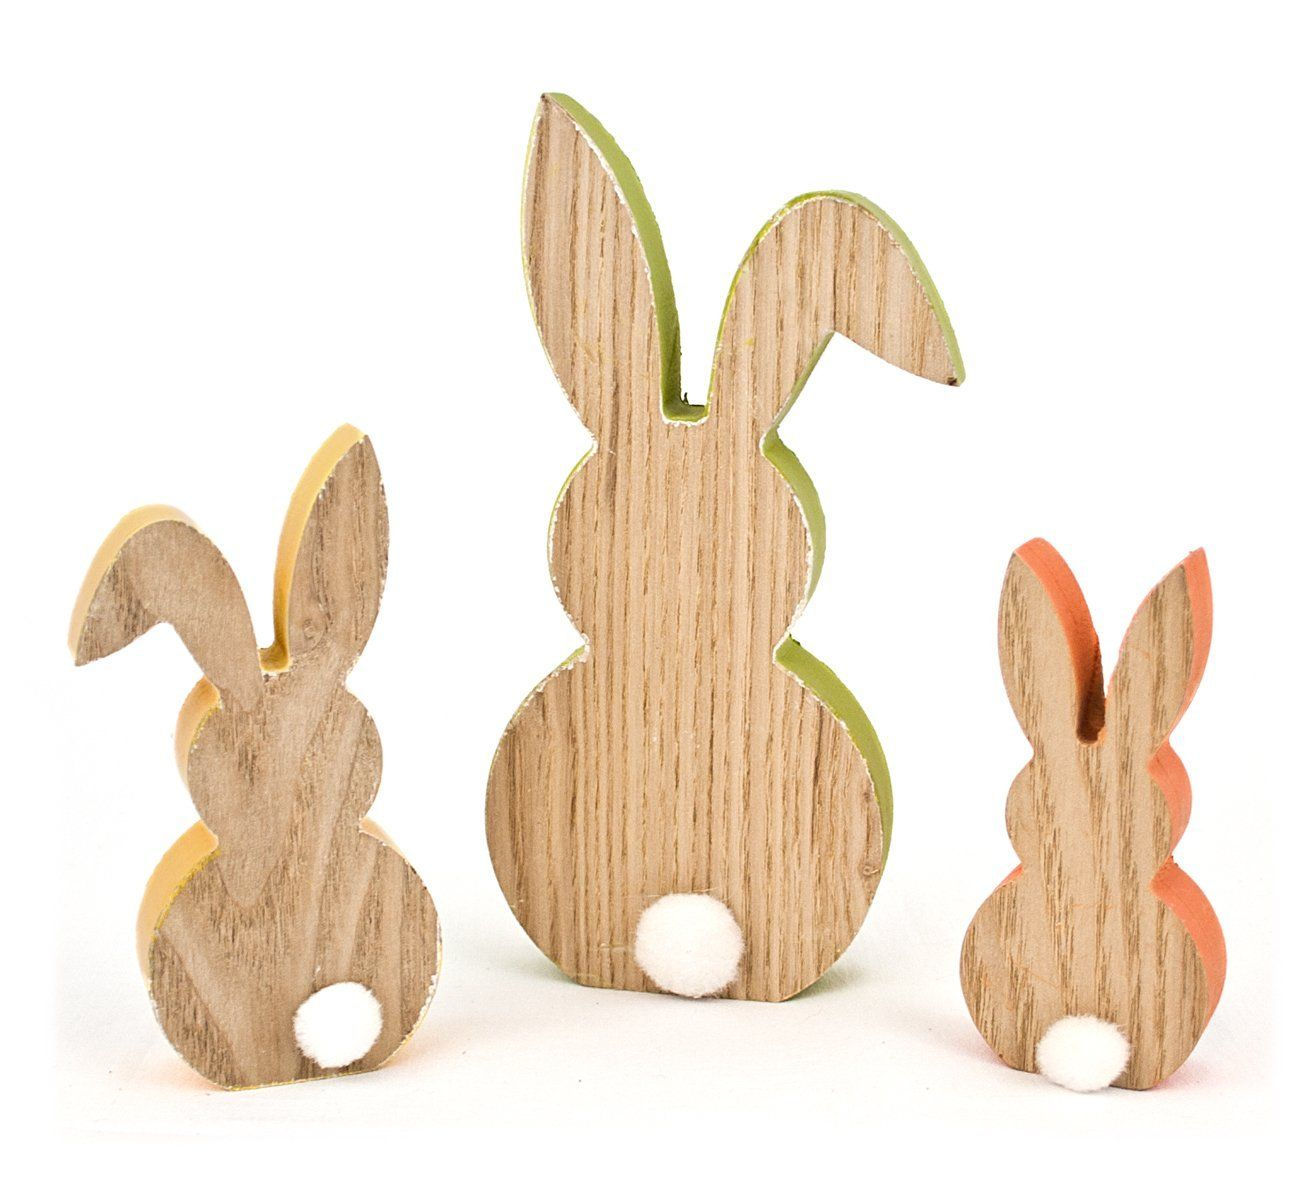 3x deko figur osterhase hase silhouette aus holz 18 12 10cm osterdeko fr hlingsdeko. Black Bedroom Furniture Sets. Home Design Ideas